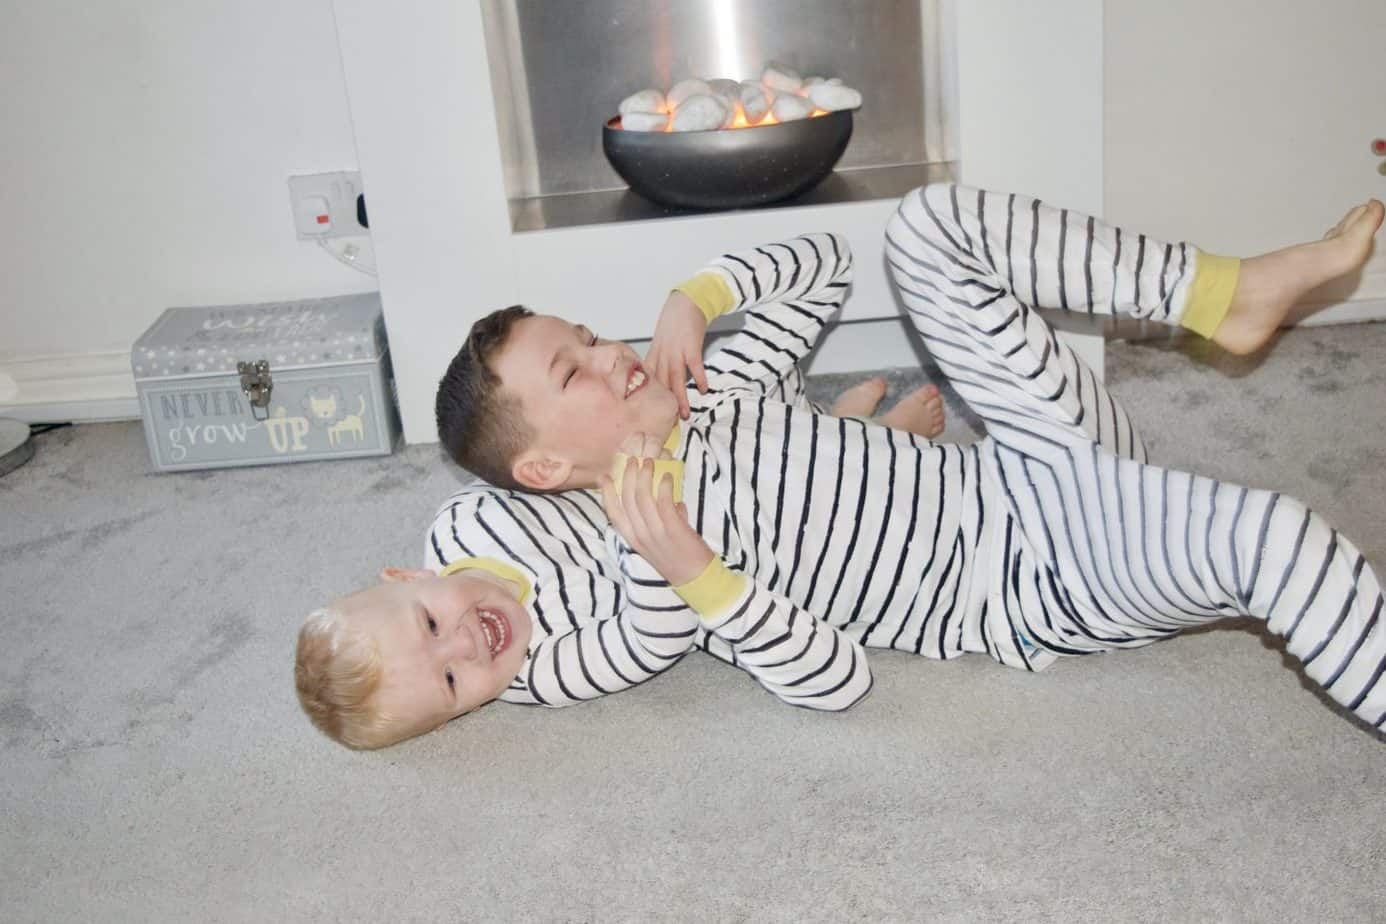 Mr B and Baby K rolling around on the floor wearing their striped pyjamas